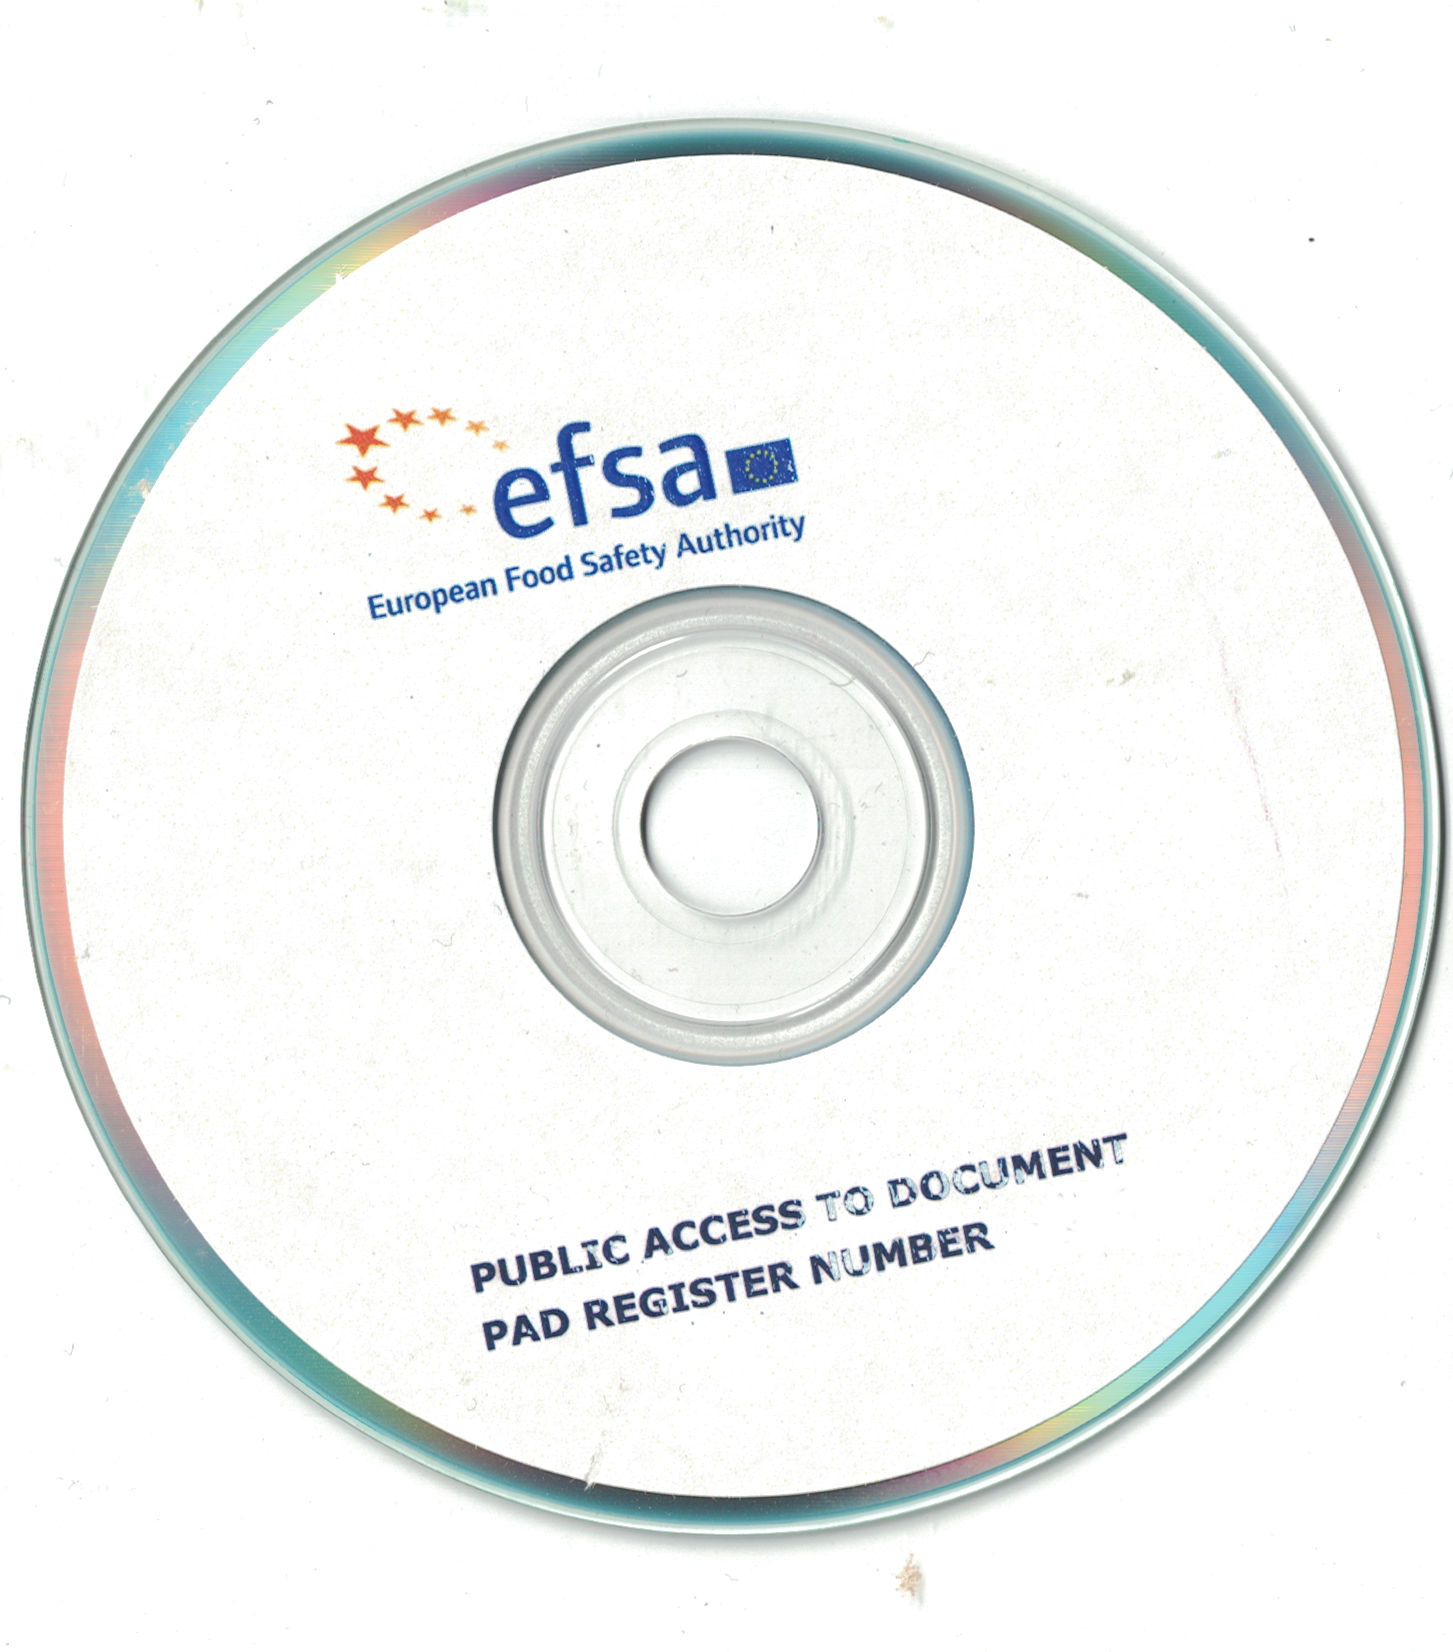 EFSA access to documents